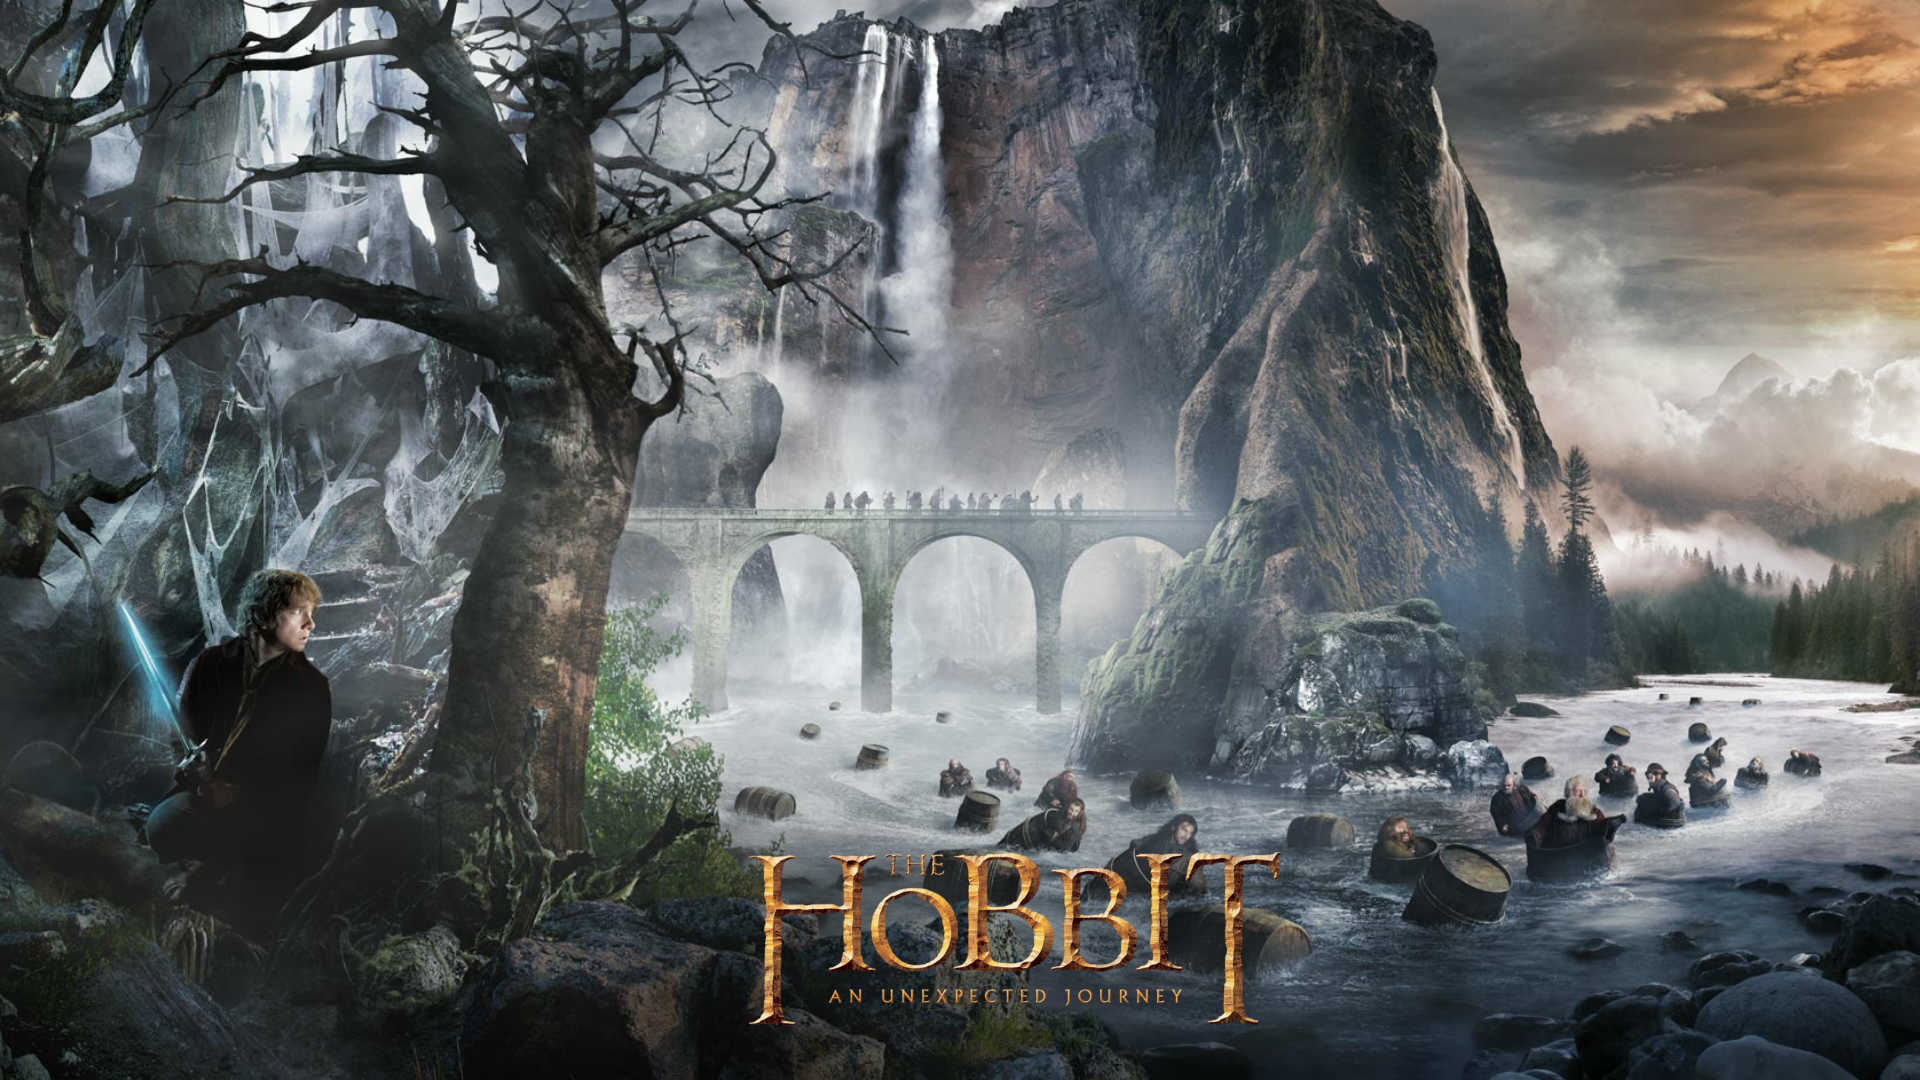 the hobbit hd wallpaper wallpapers55com   Best Wallpapers for PCs 1920x1080